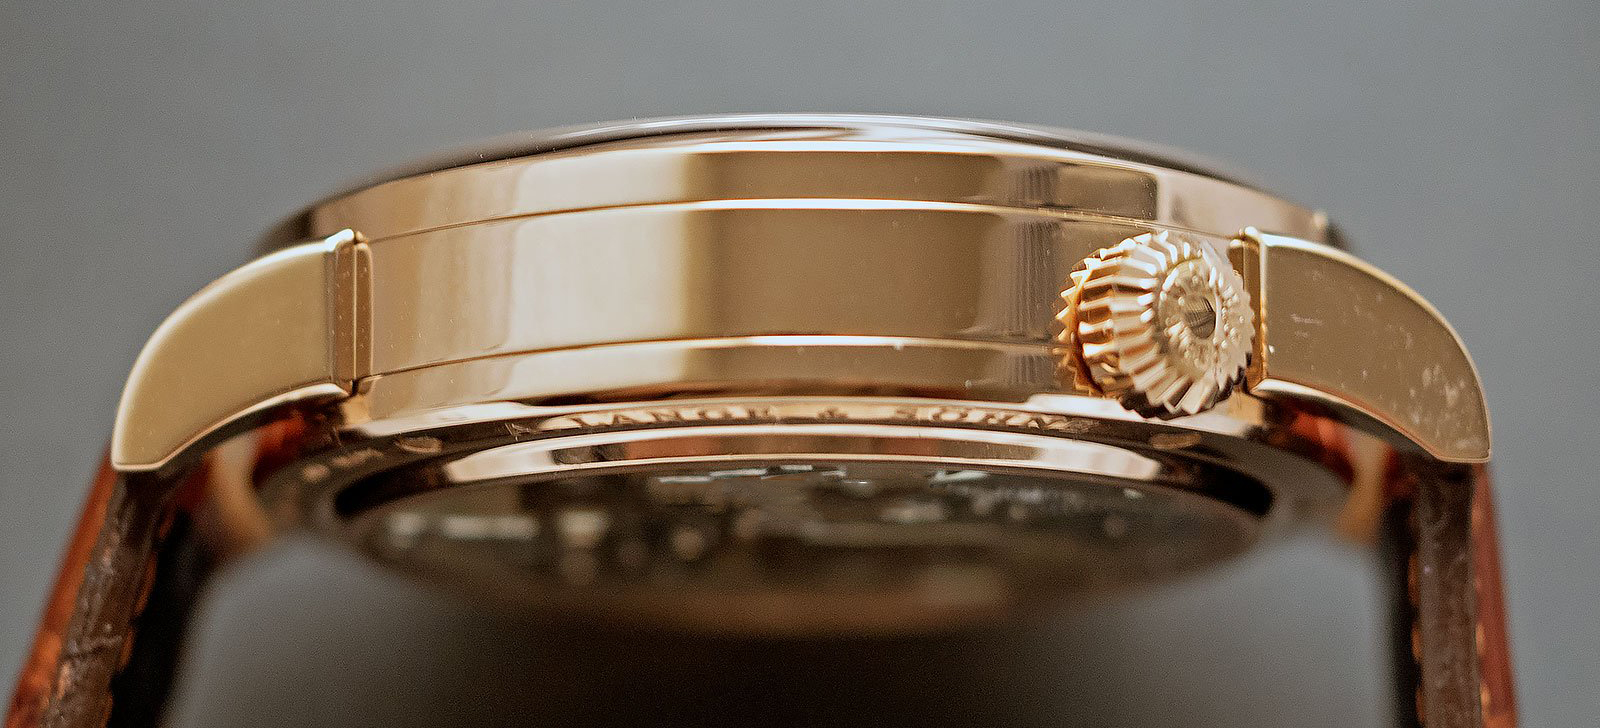 a lange söhne zeitwerk pink gold silver dial reference 140.032 case band detail